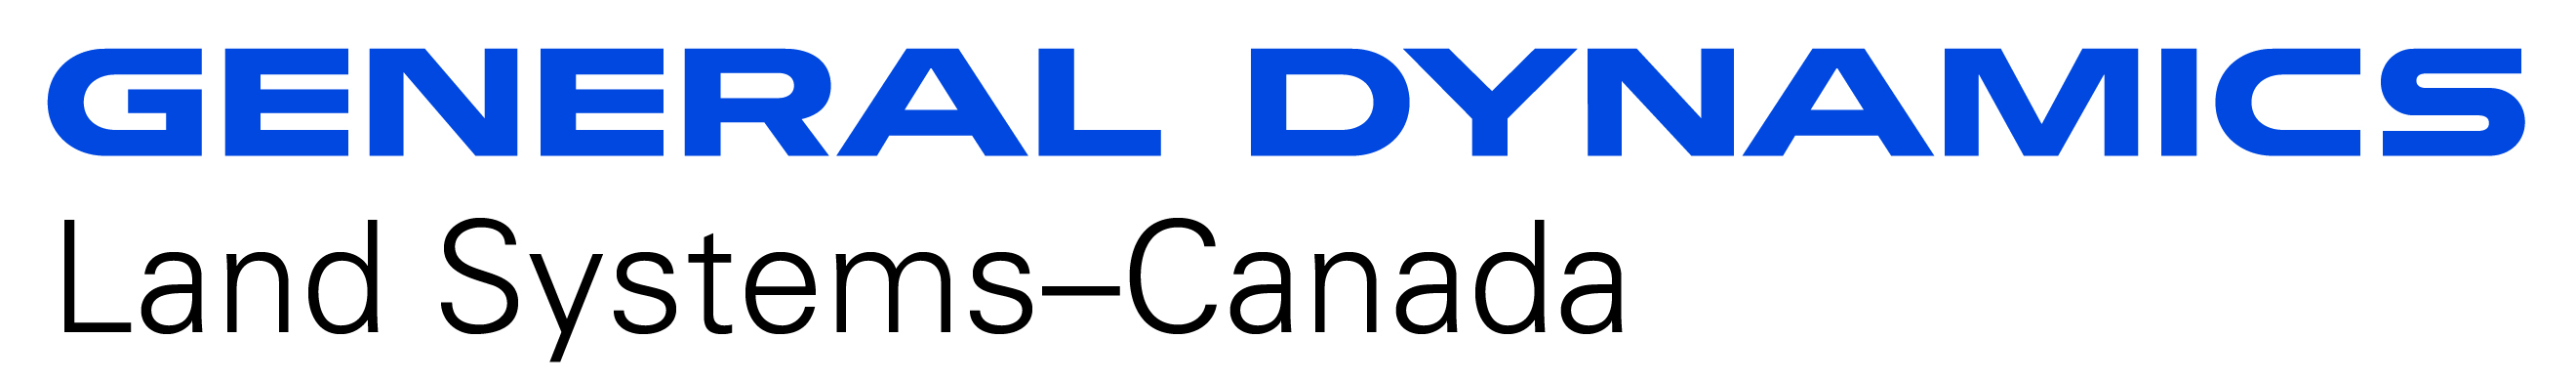 GENERAL DYNAMICS LAND SYSTEMS-CANADA